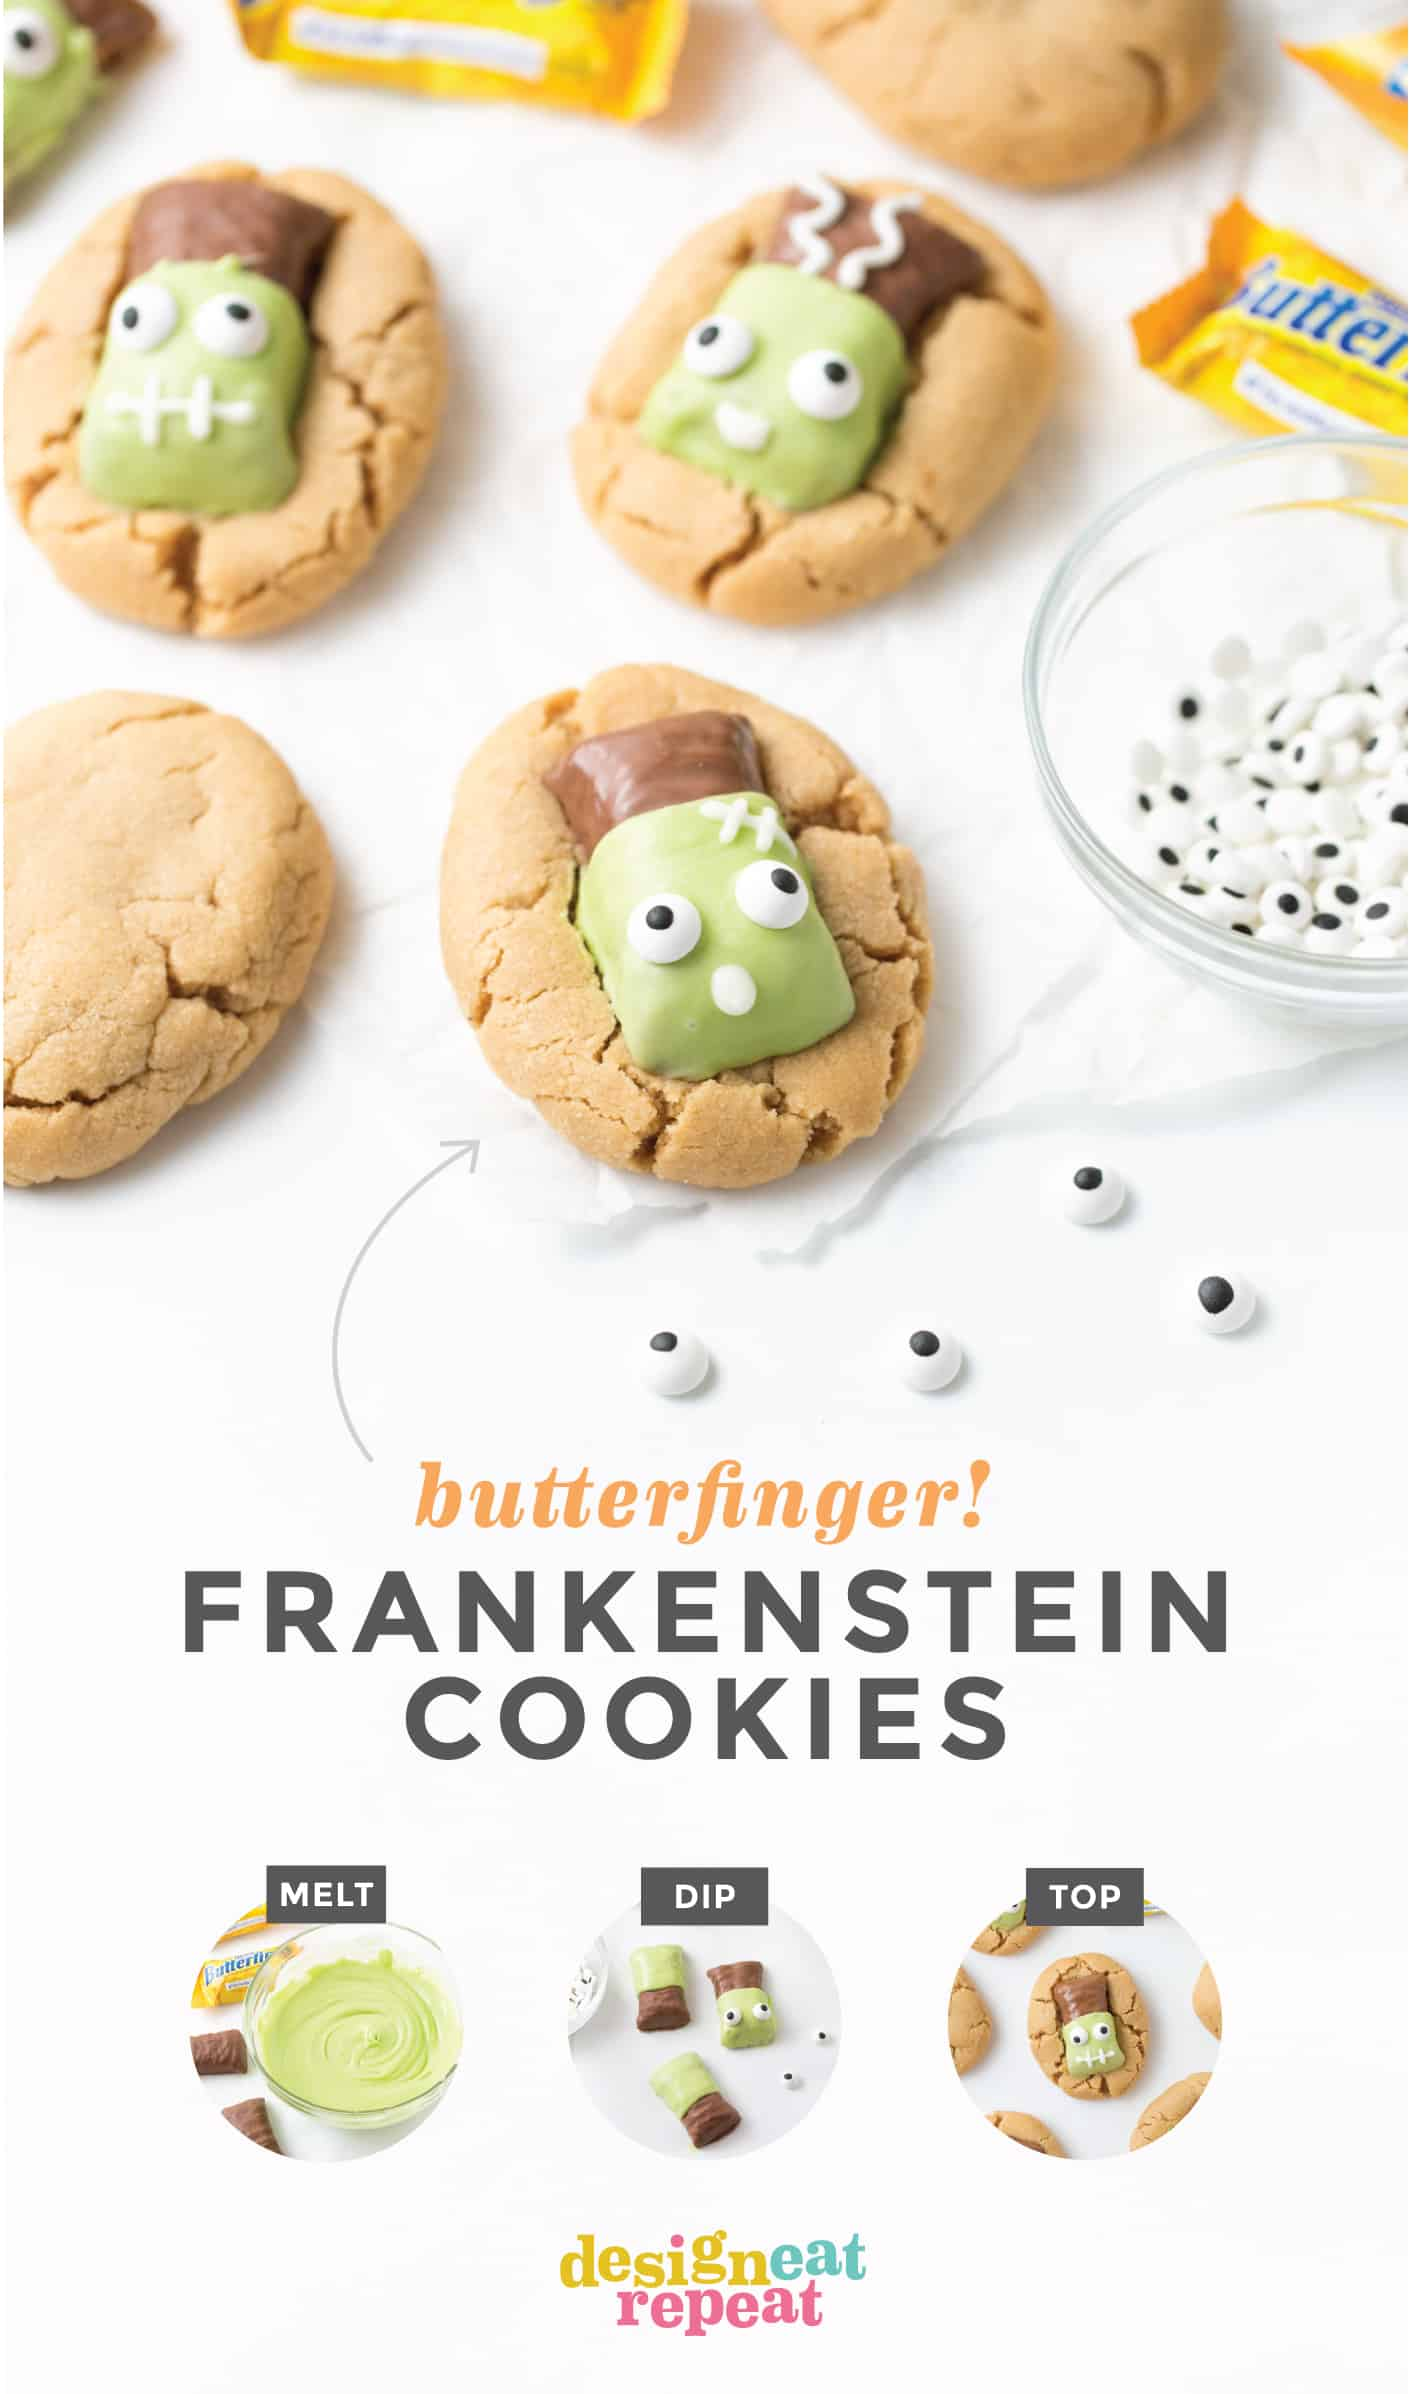 Peanut Butter Cookies with Butterfinger Frankensteins on top. Butterfinger candy bar dipped in green white chocolate then decorated with eyeballs on top.